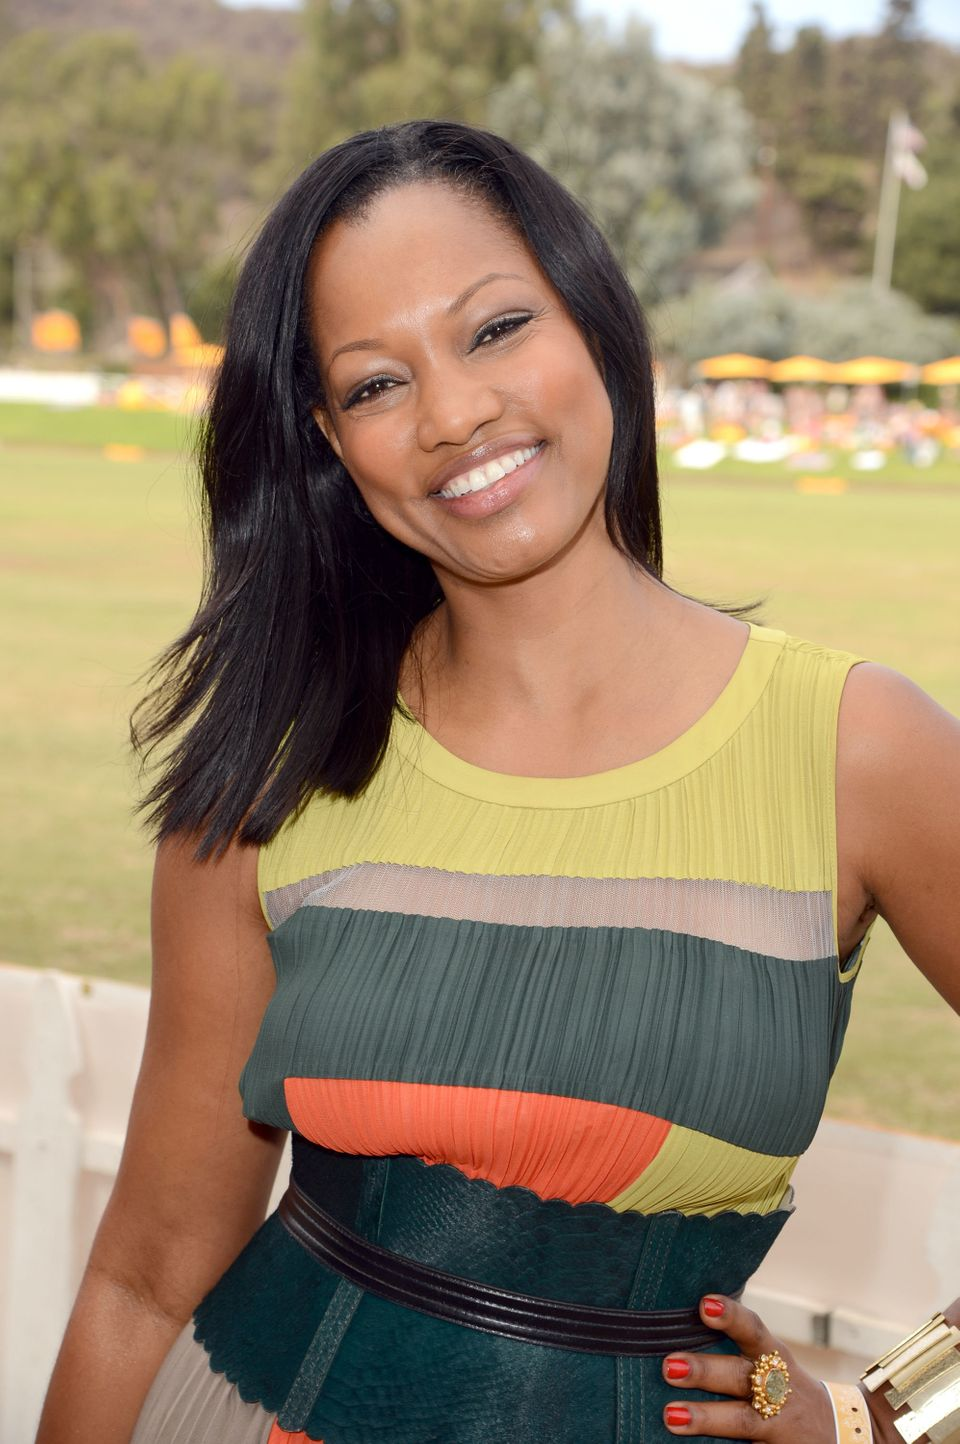 PACIFIC PALISADES, CA - OCTOBER 06:  Actress Garcelle Beauvais attends the Third Annual Veuve Clicquot Polo Classic at Will R